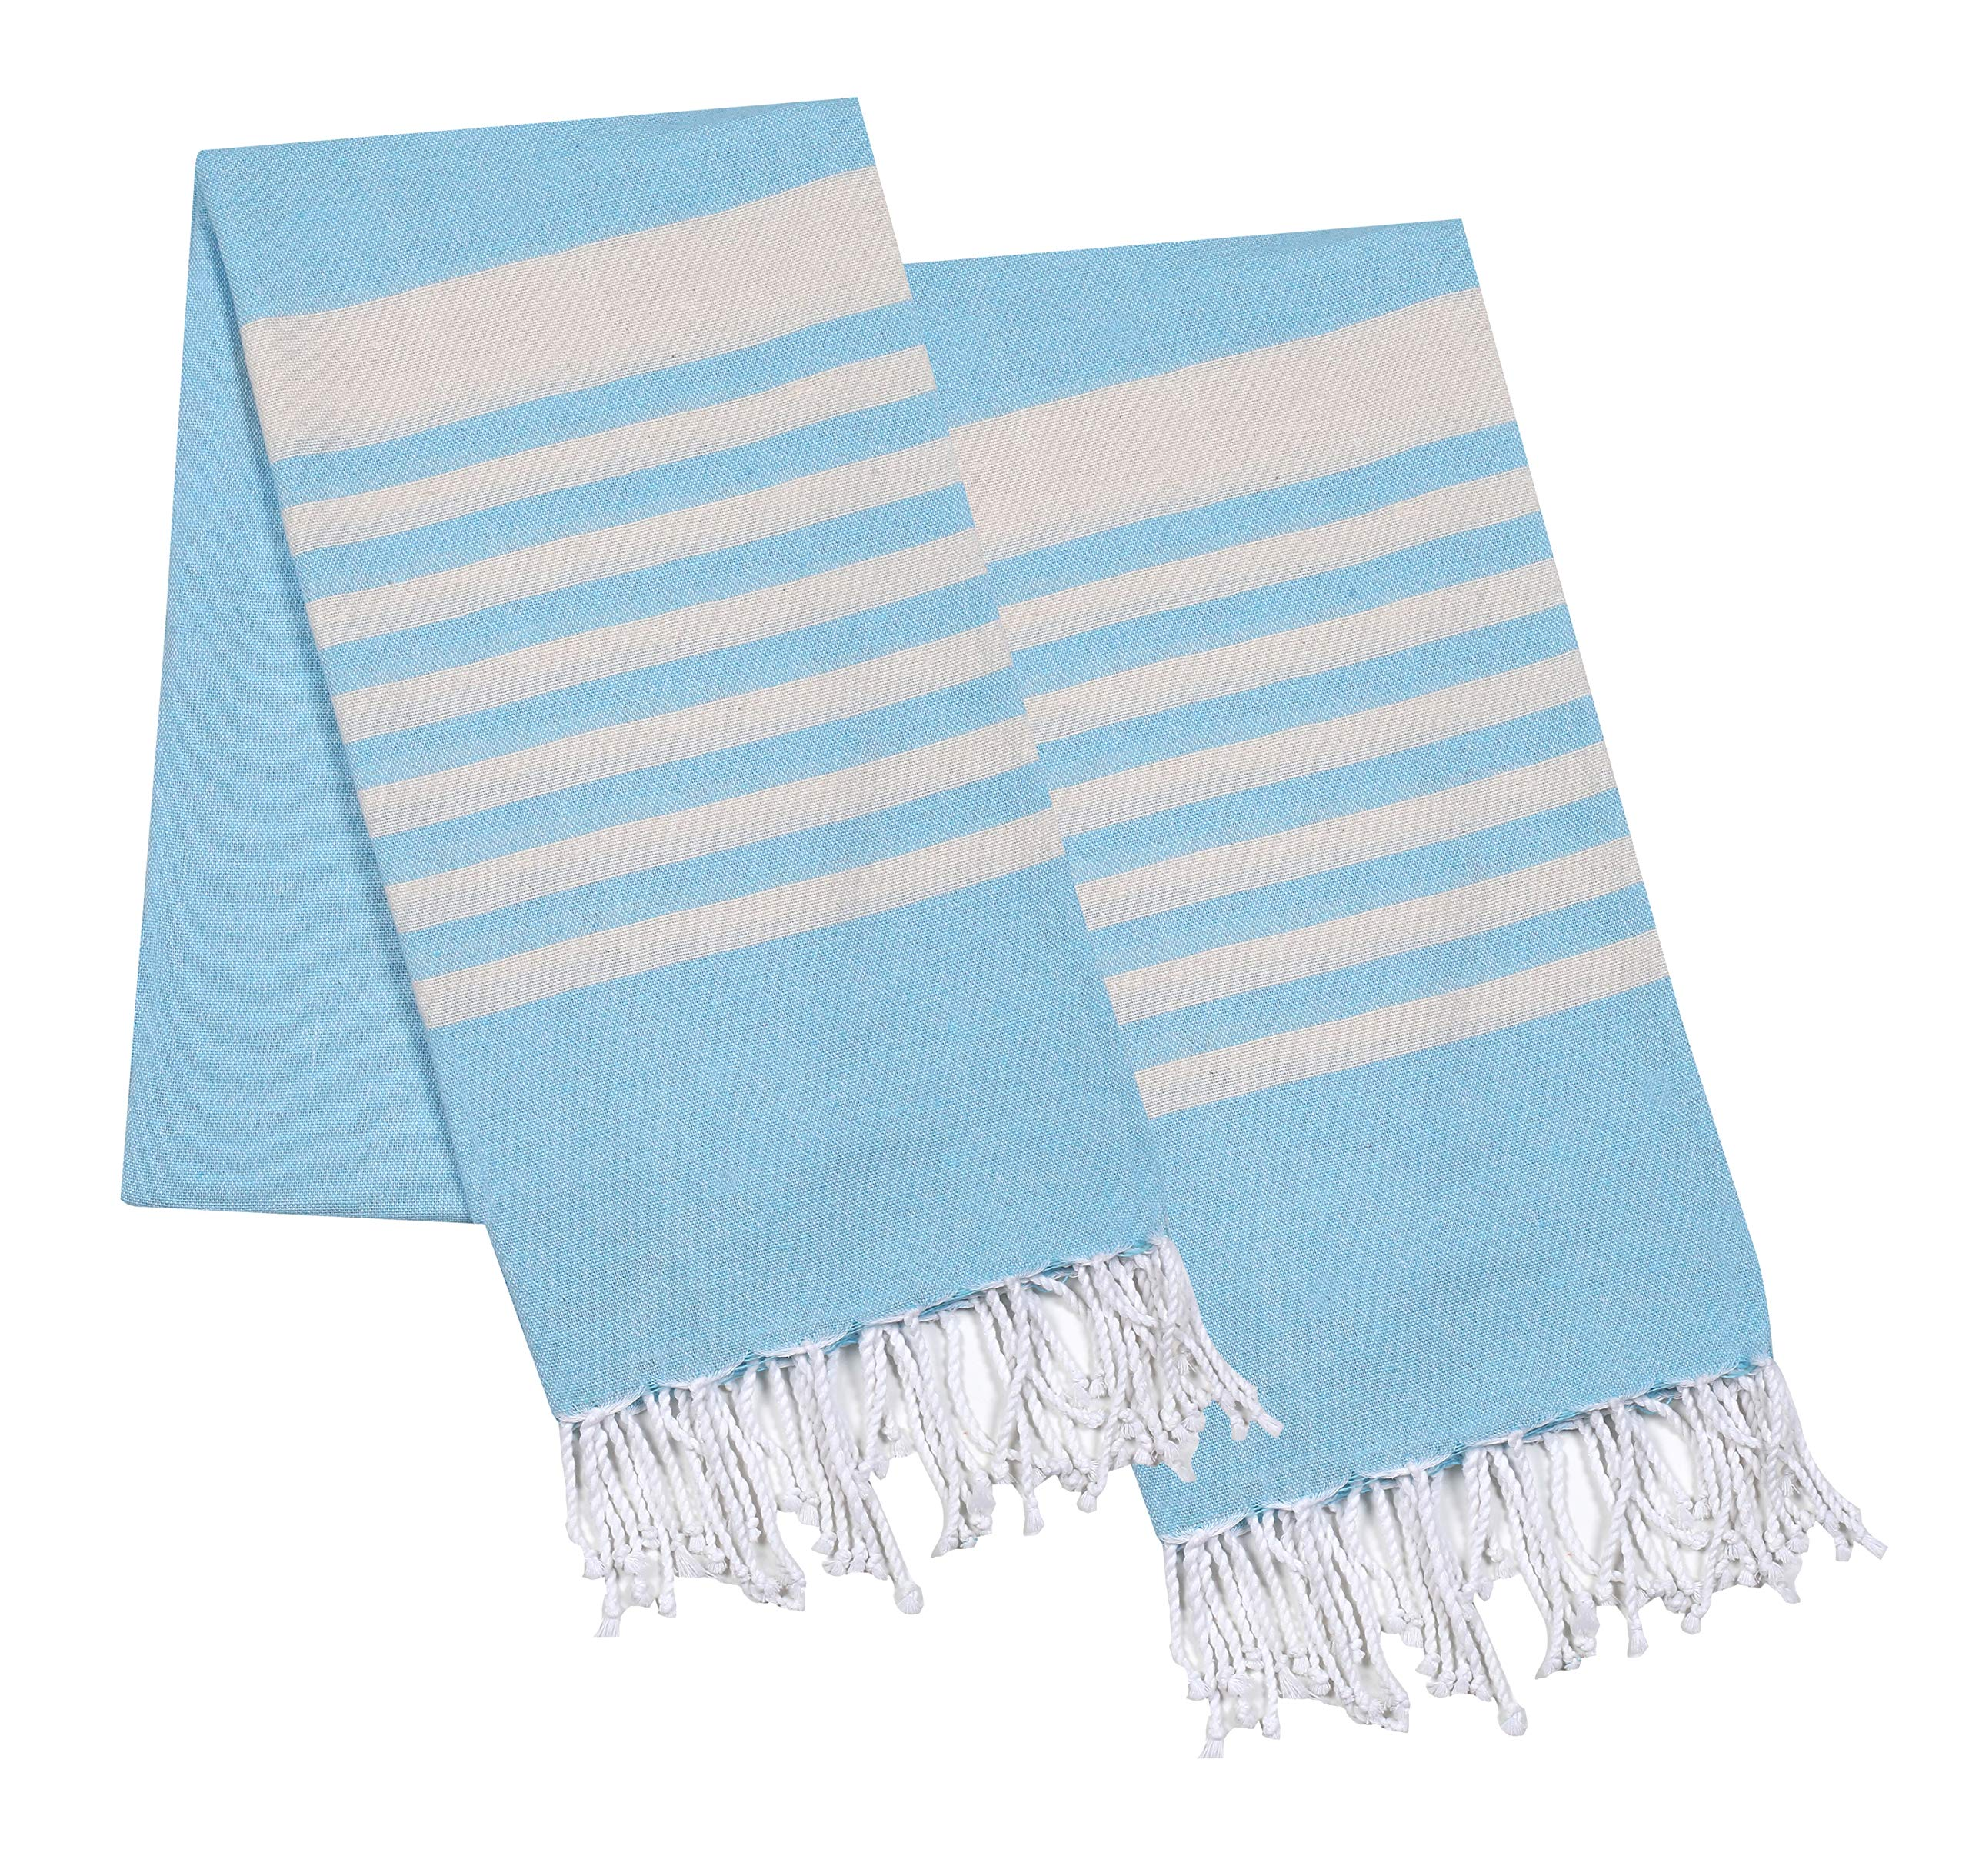 Thin Beach Towel in Cotton Fabric with Quick Dry Absorbent Quality,Peshtemal Beach Towel,Pool Blanket,Fouta Beach Towels,Gym Pool Blanket Fouta Towels,- Allover Design 39x70 -Sky Blue White.Set of 2 by Life By cotton